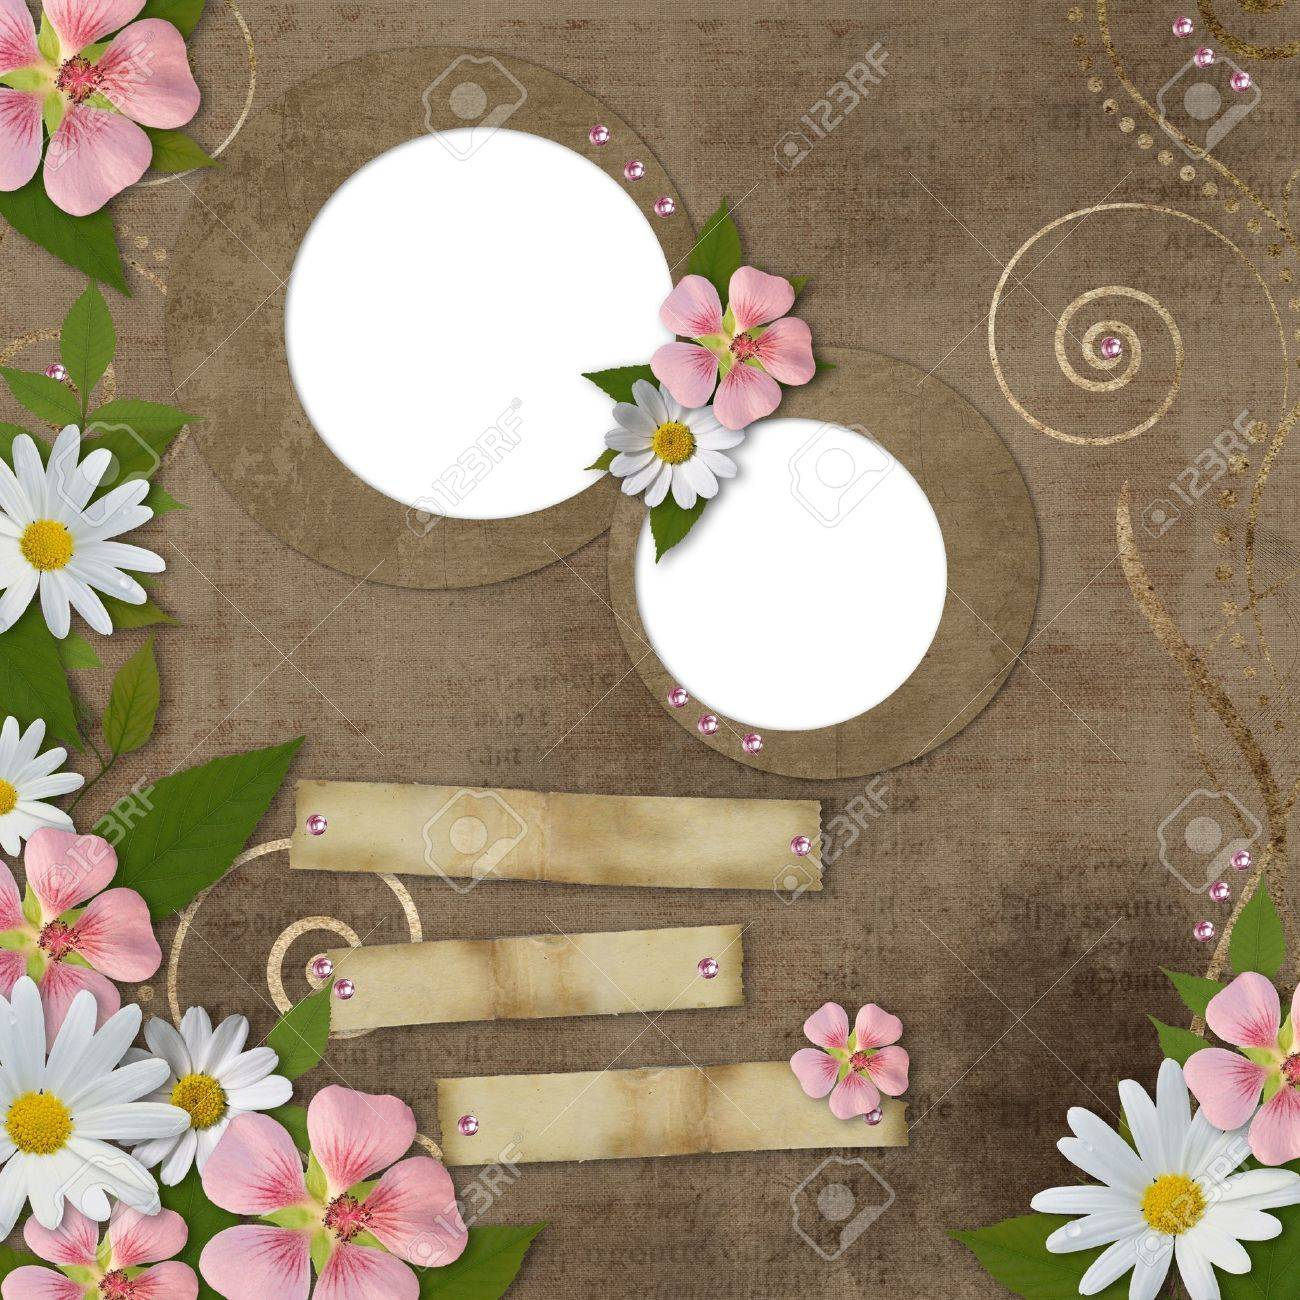 vintage background with daisy and pink flowers Stock Photo - 10134568